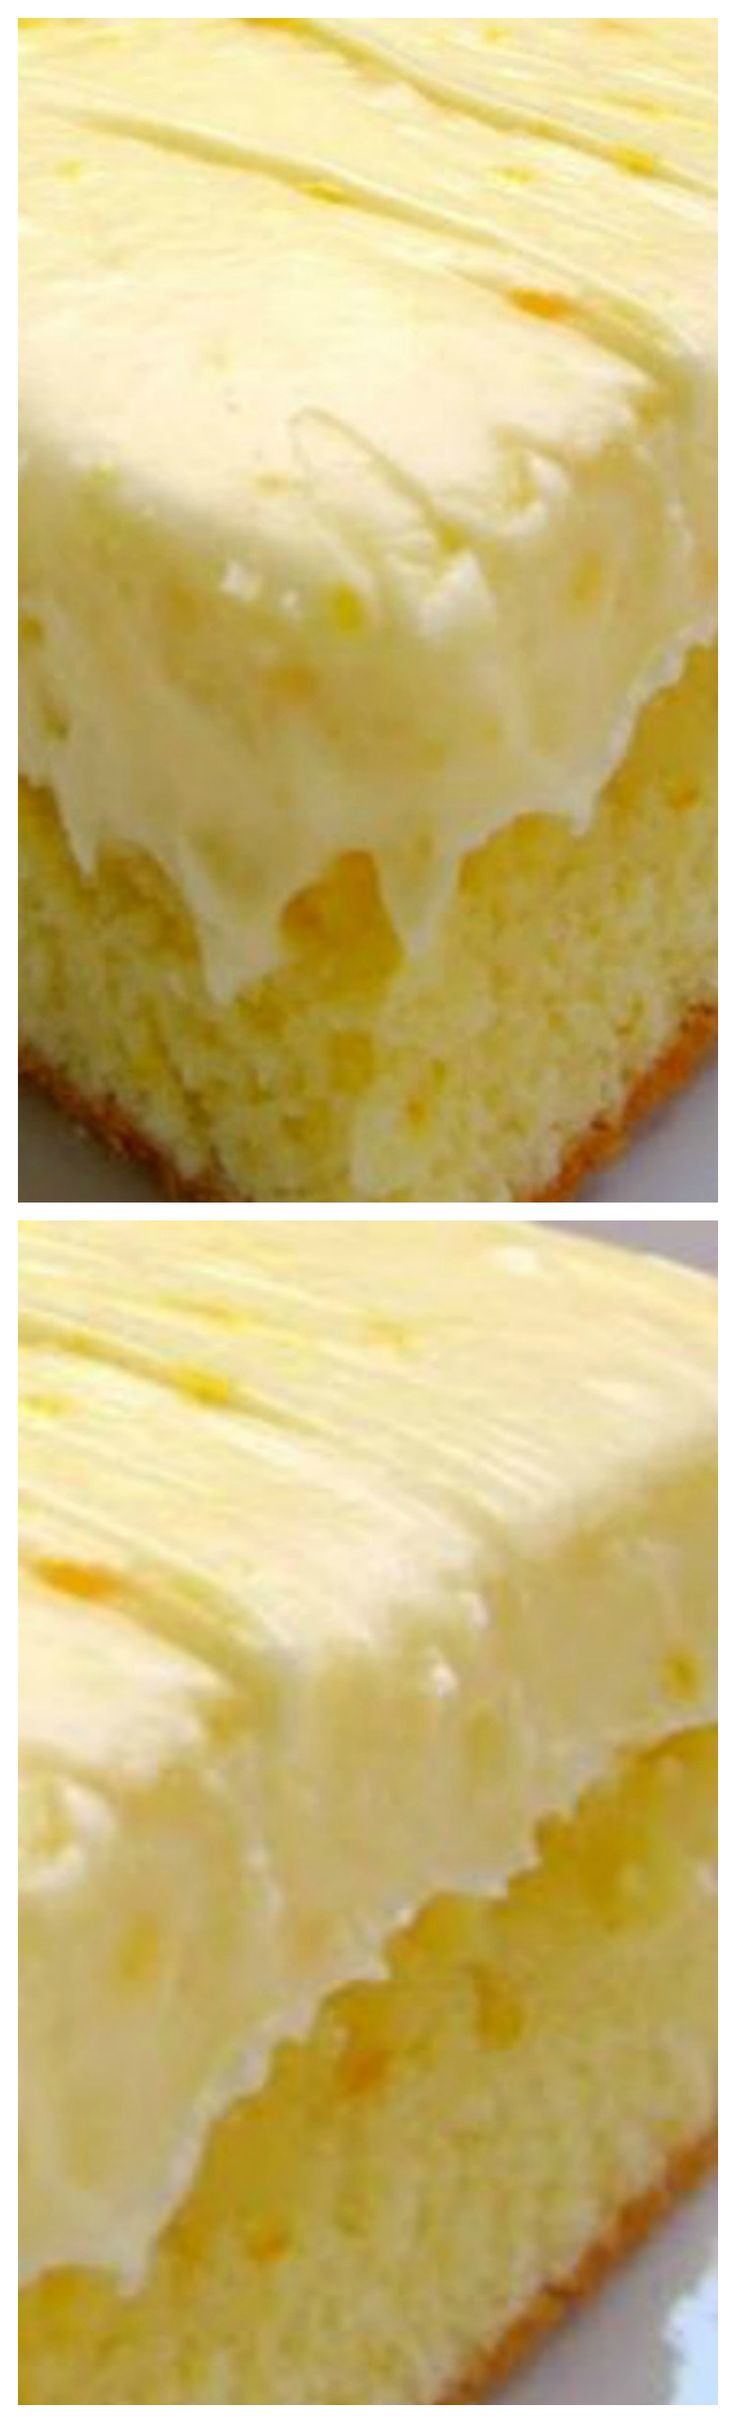 Orange Cake Recipe -~ Homemade cake with orange juice and orange zest - topped with a homemade orange cream cheese frosting.